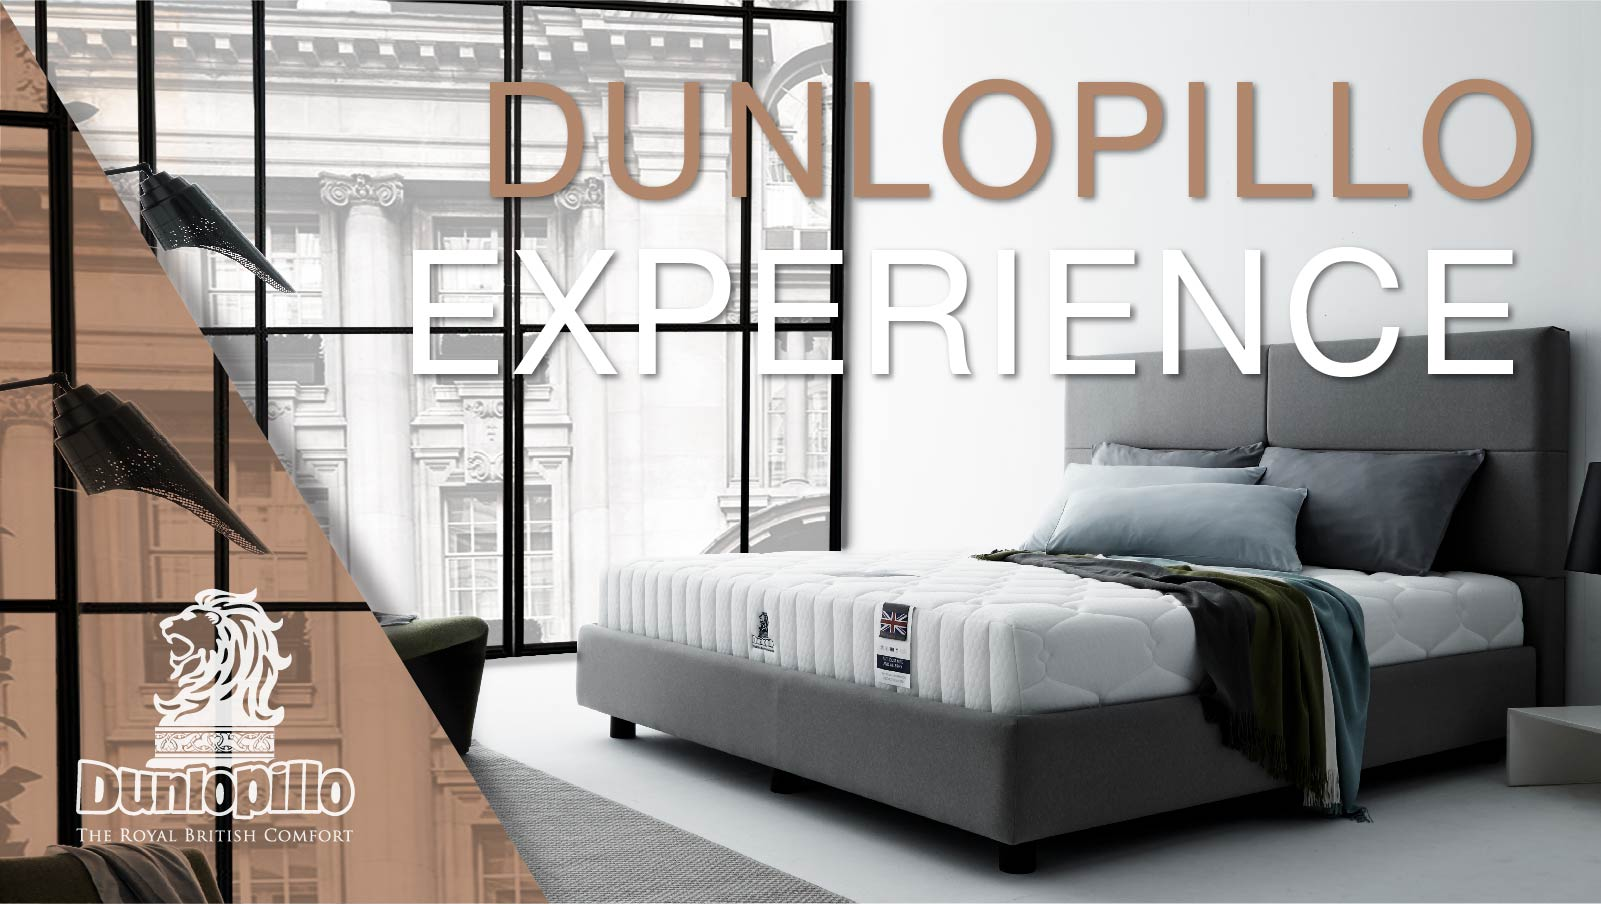 Dunlopillo Mattress - Experience